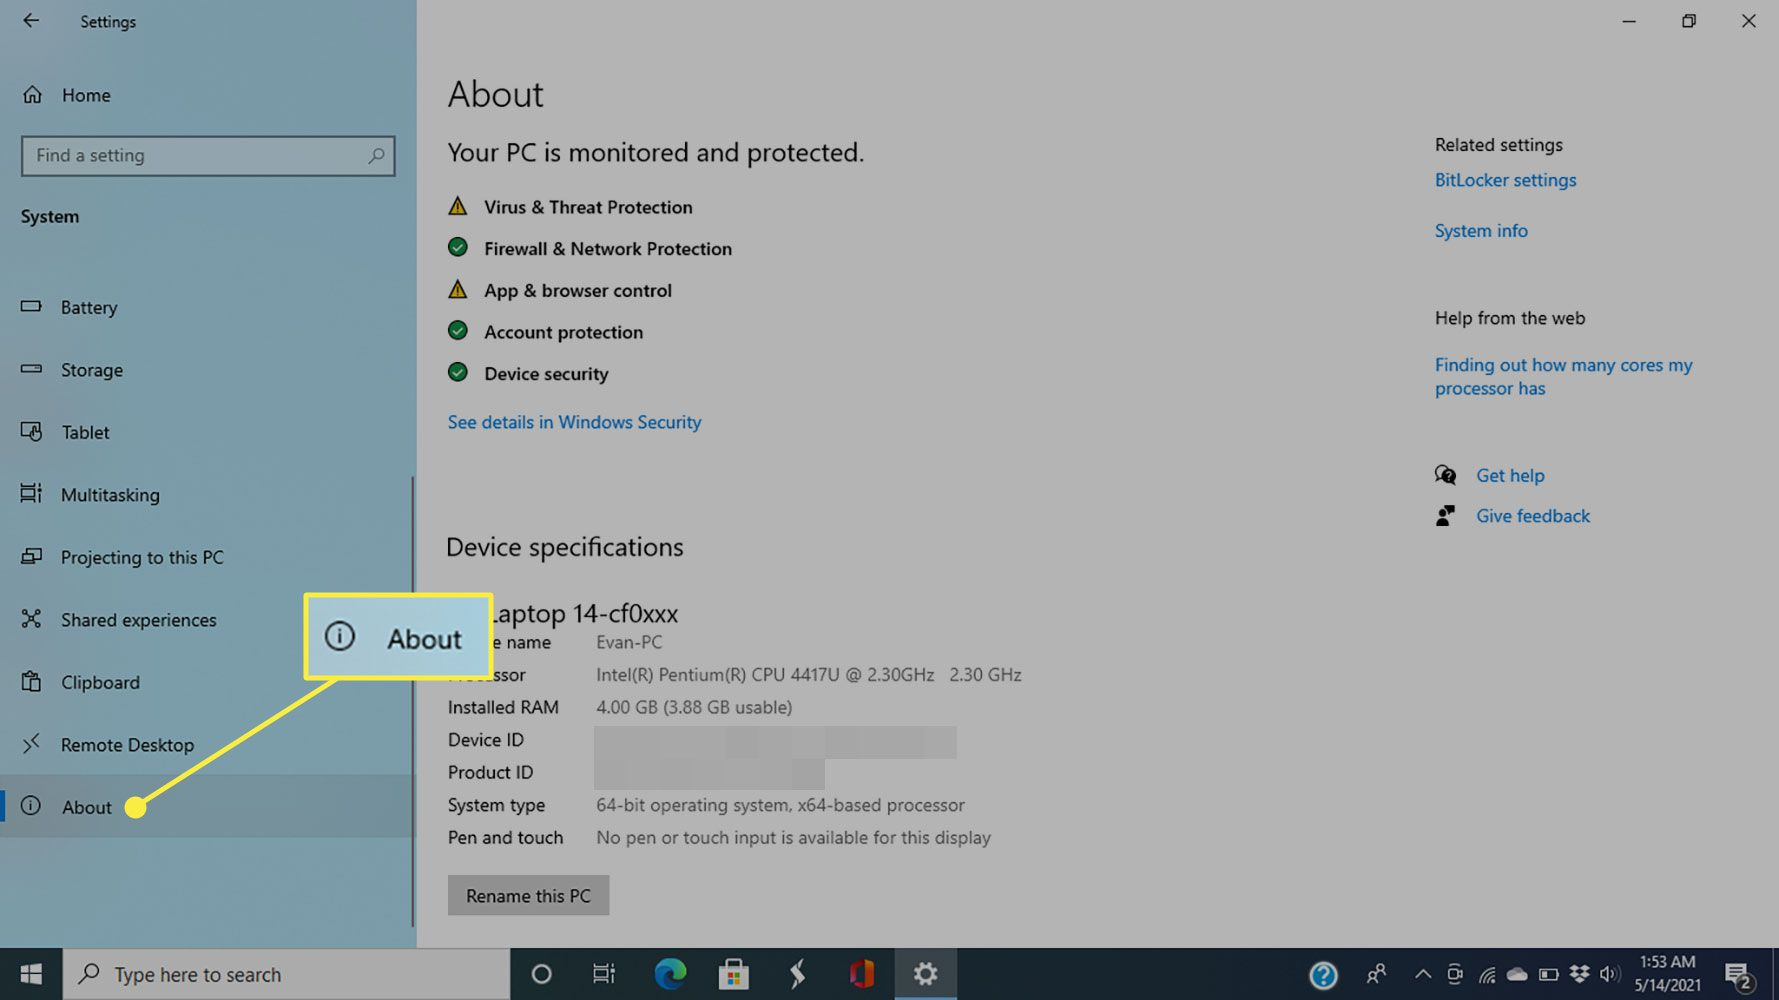 About in Windows 10 System settings